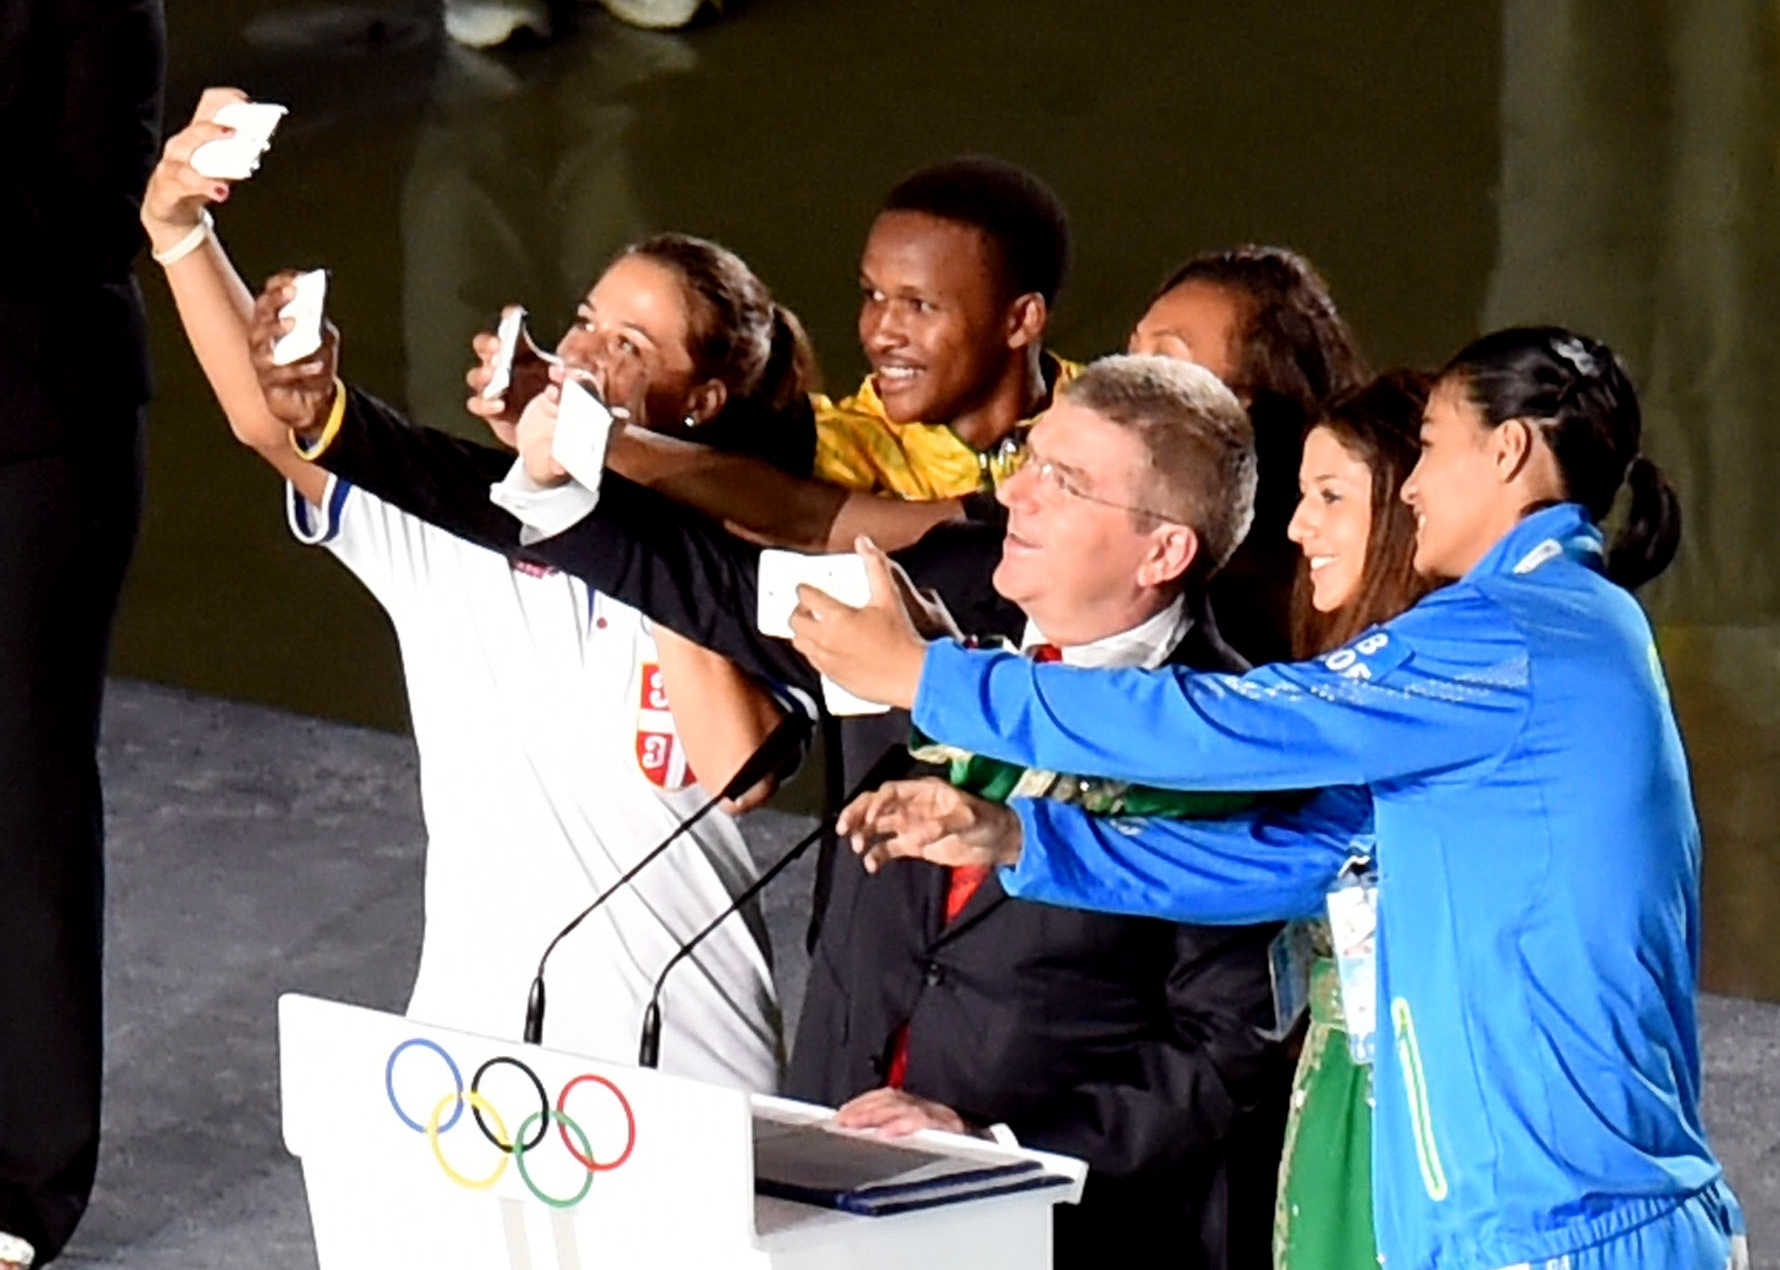 Picture A: Thomas Bach, the IOC President, invites some of the young athletes to use their smart phones to take selfies with him during the Opening Ceremony for Nanjing 2014 Summer Youth Olympic Games. (Photo: Business Wire)